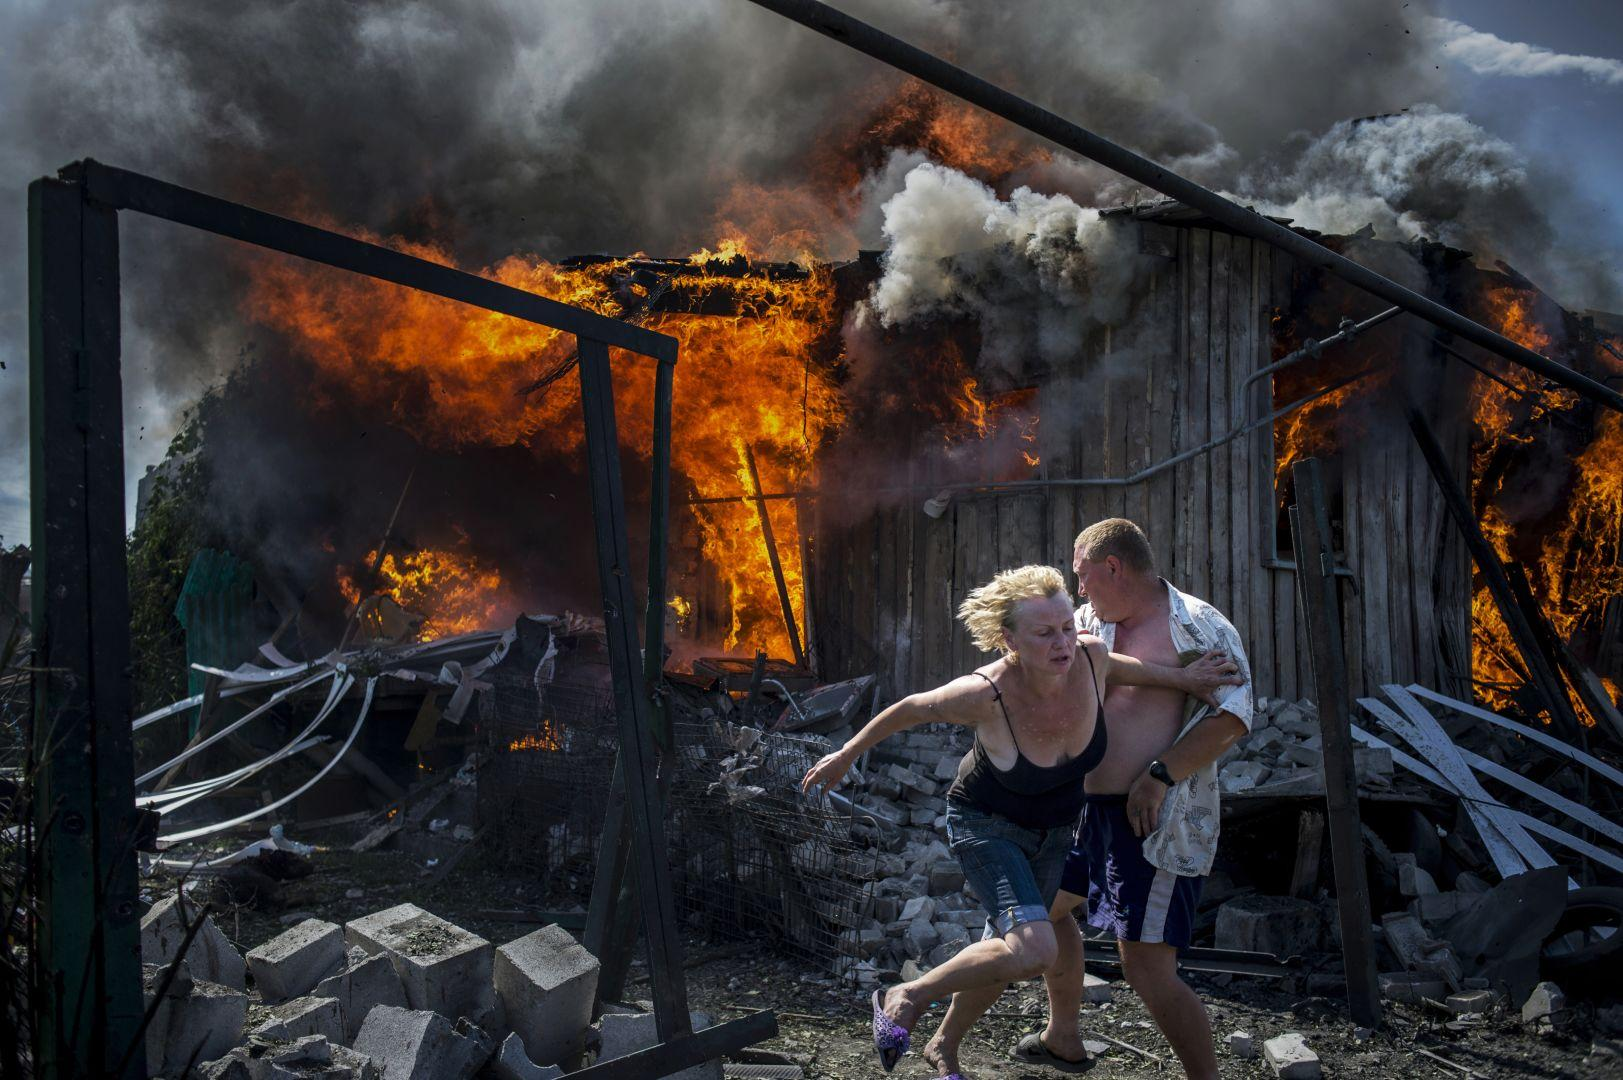 Black Days of Ukraine, Valery Melnikov, Russia, The World Press Photo Contest